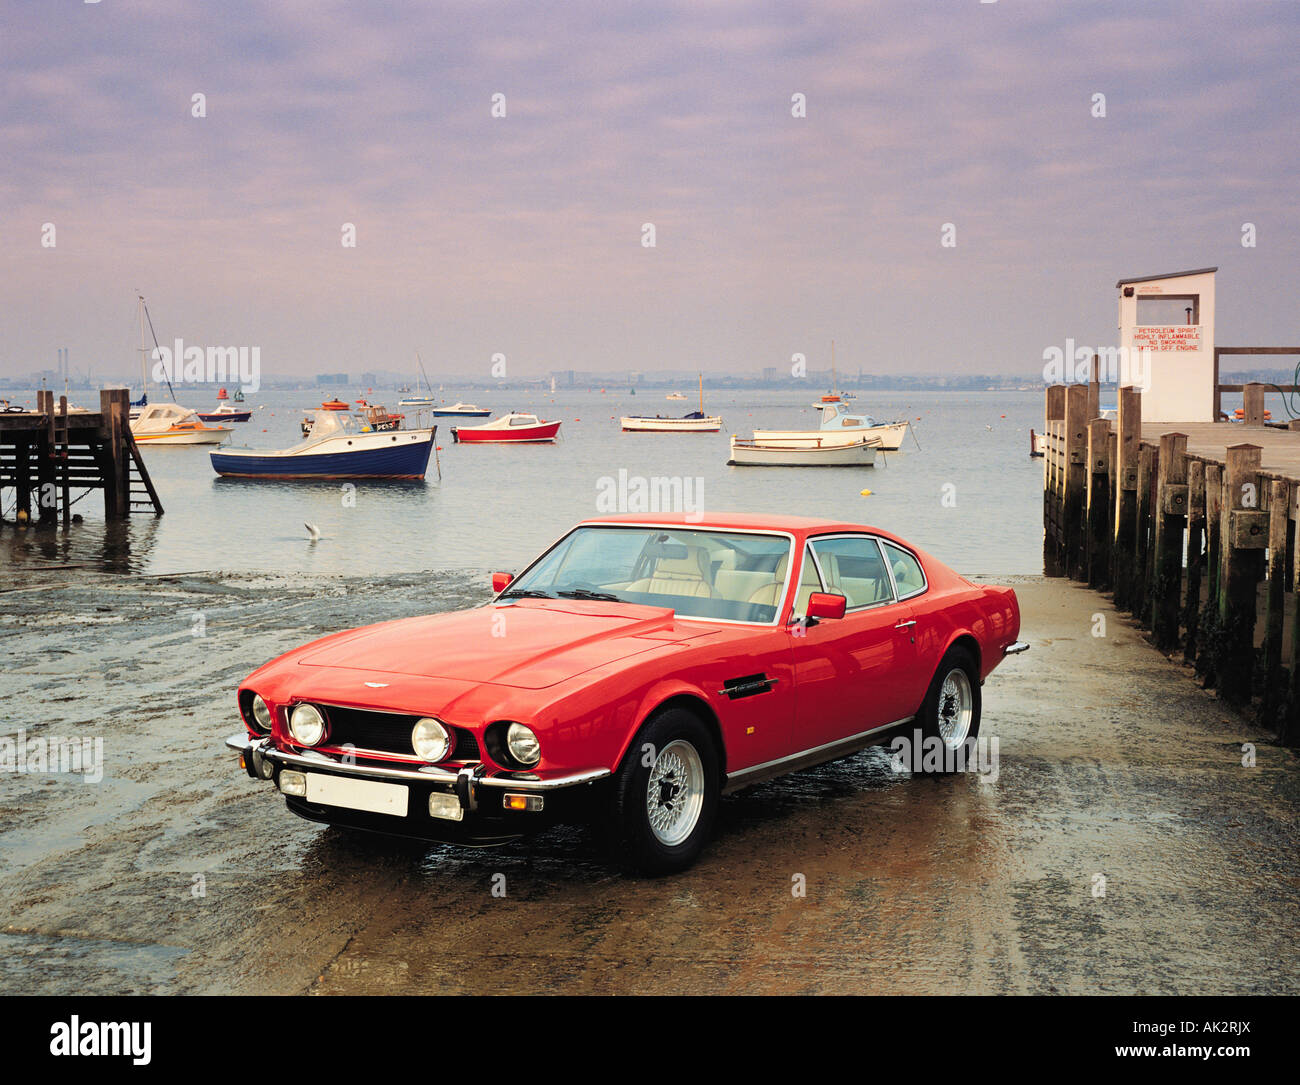 Red Aston Martin Dbs Sports Car On Harbour Slipway With Boats In